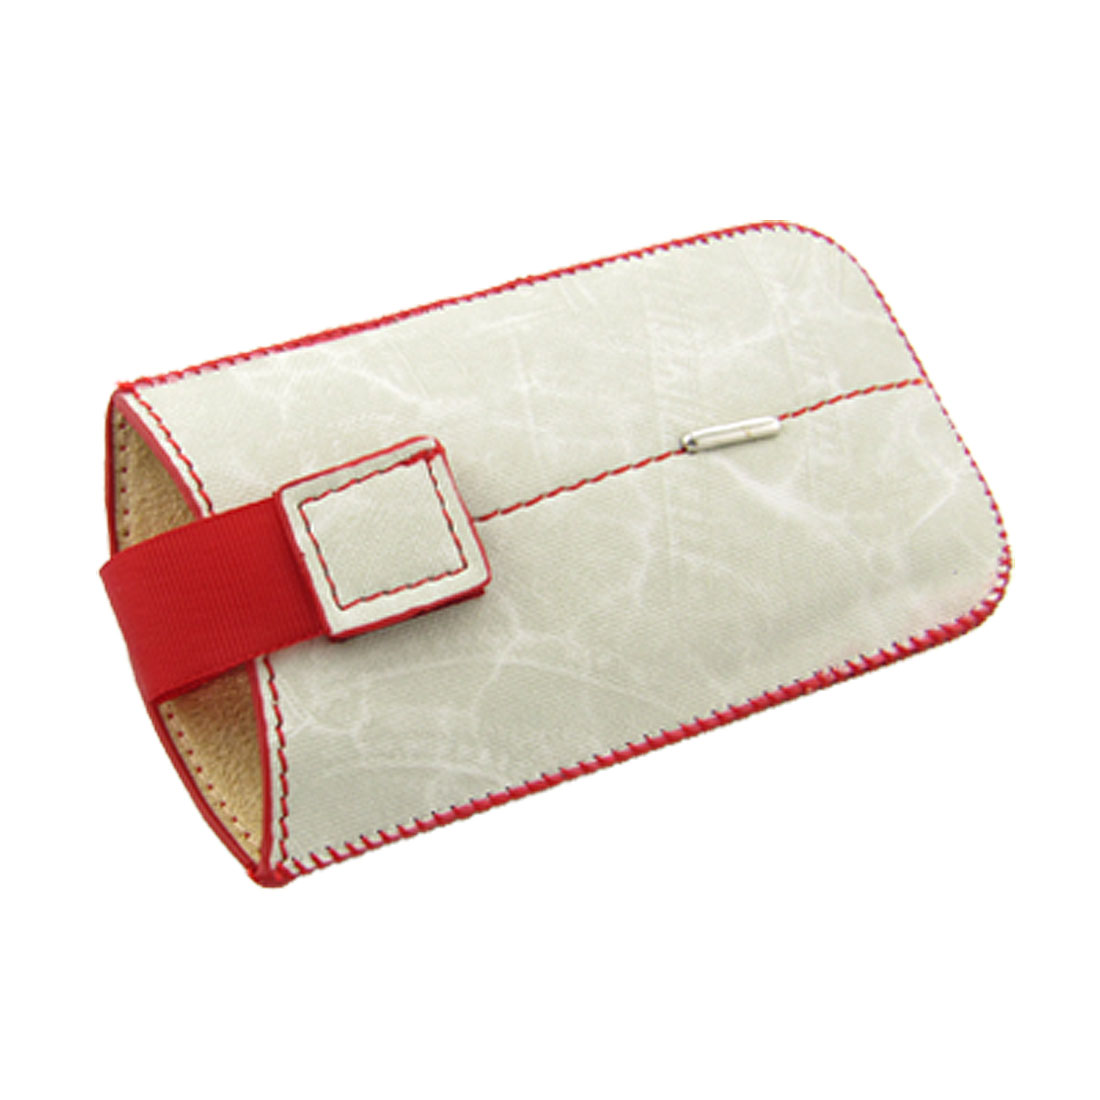 Red Rim Cowboy Style Off White Faux Leather Pouch for iPhone 4 4G